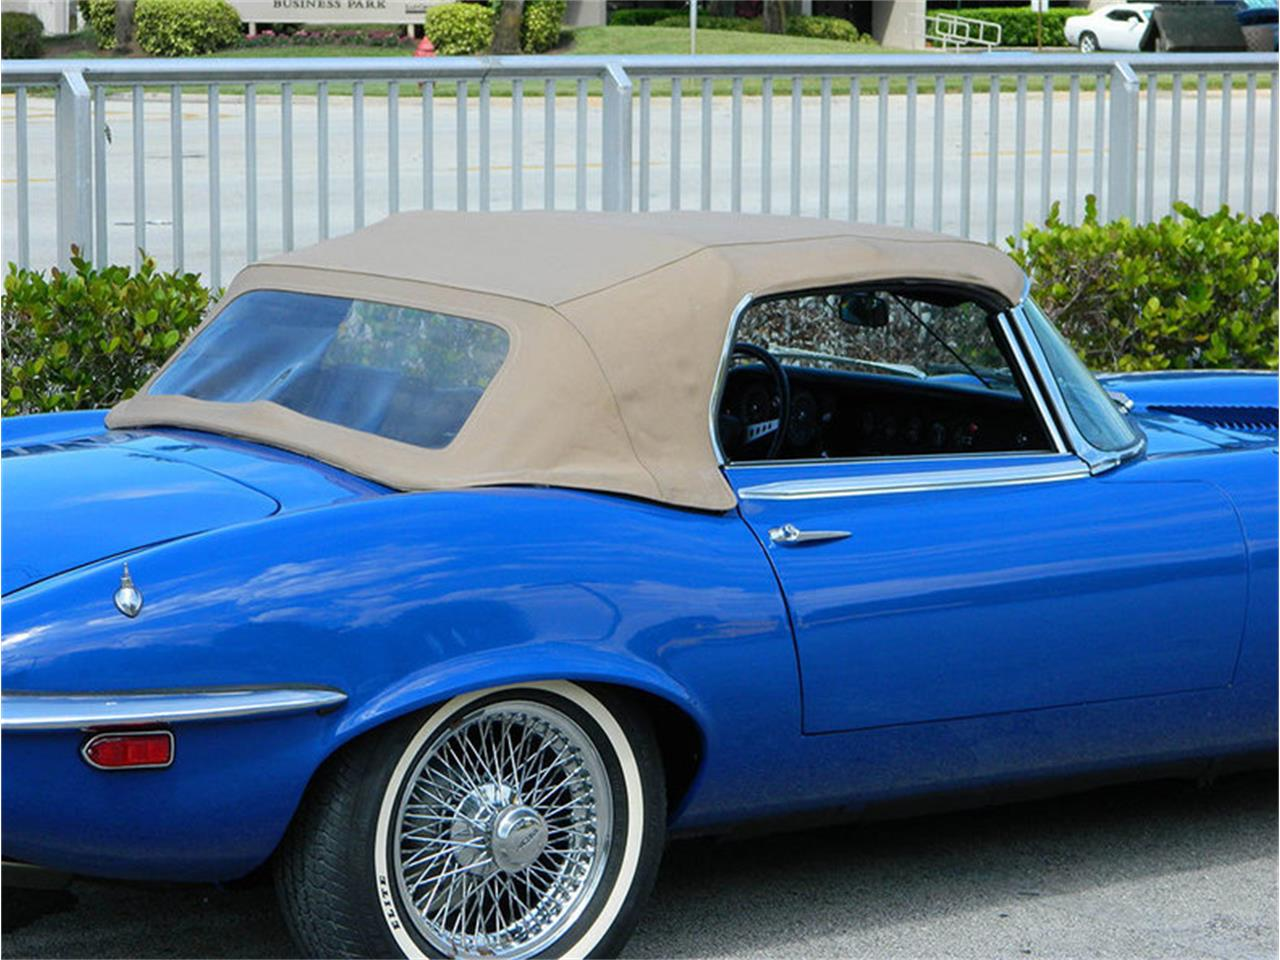 Large Picture of Classic '73 Jaguar XKE located in Greensboro North Carolina Auction Vehicle Offered by GAA Classic Cars Auctions - NO0U